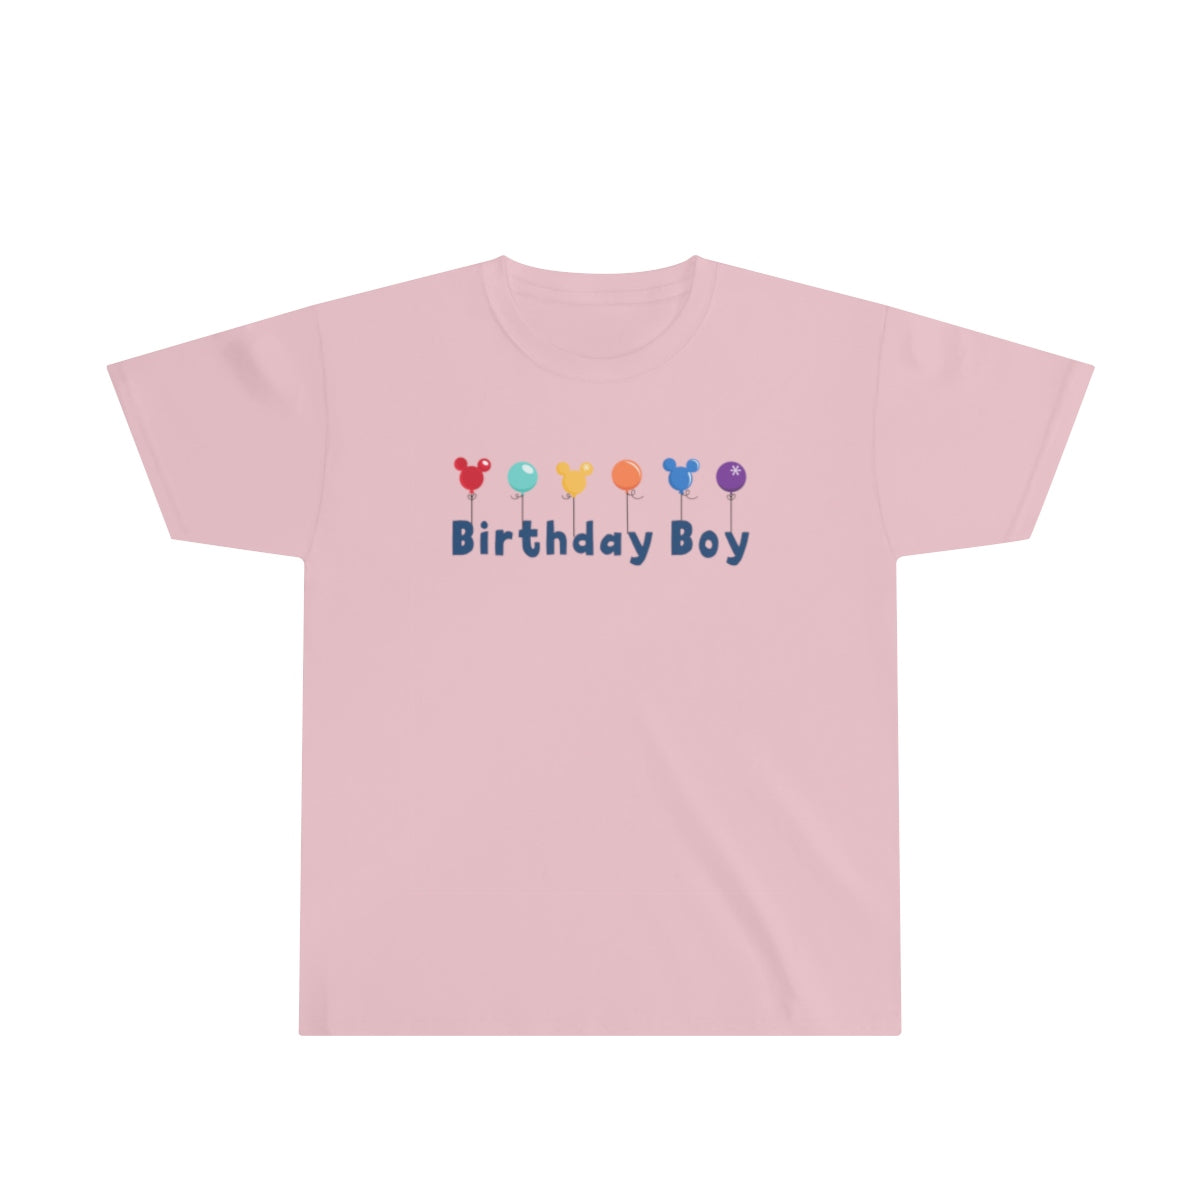 Youth Birthday Boy Tee